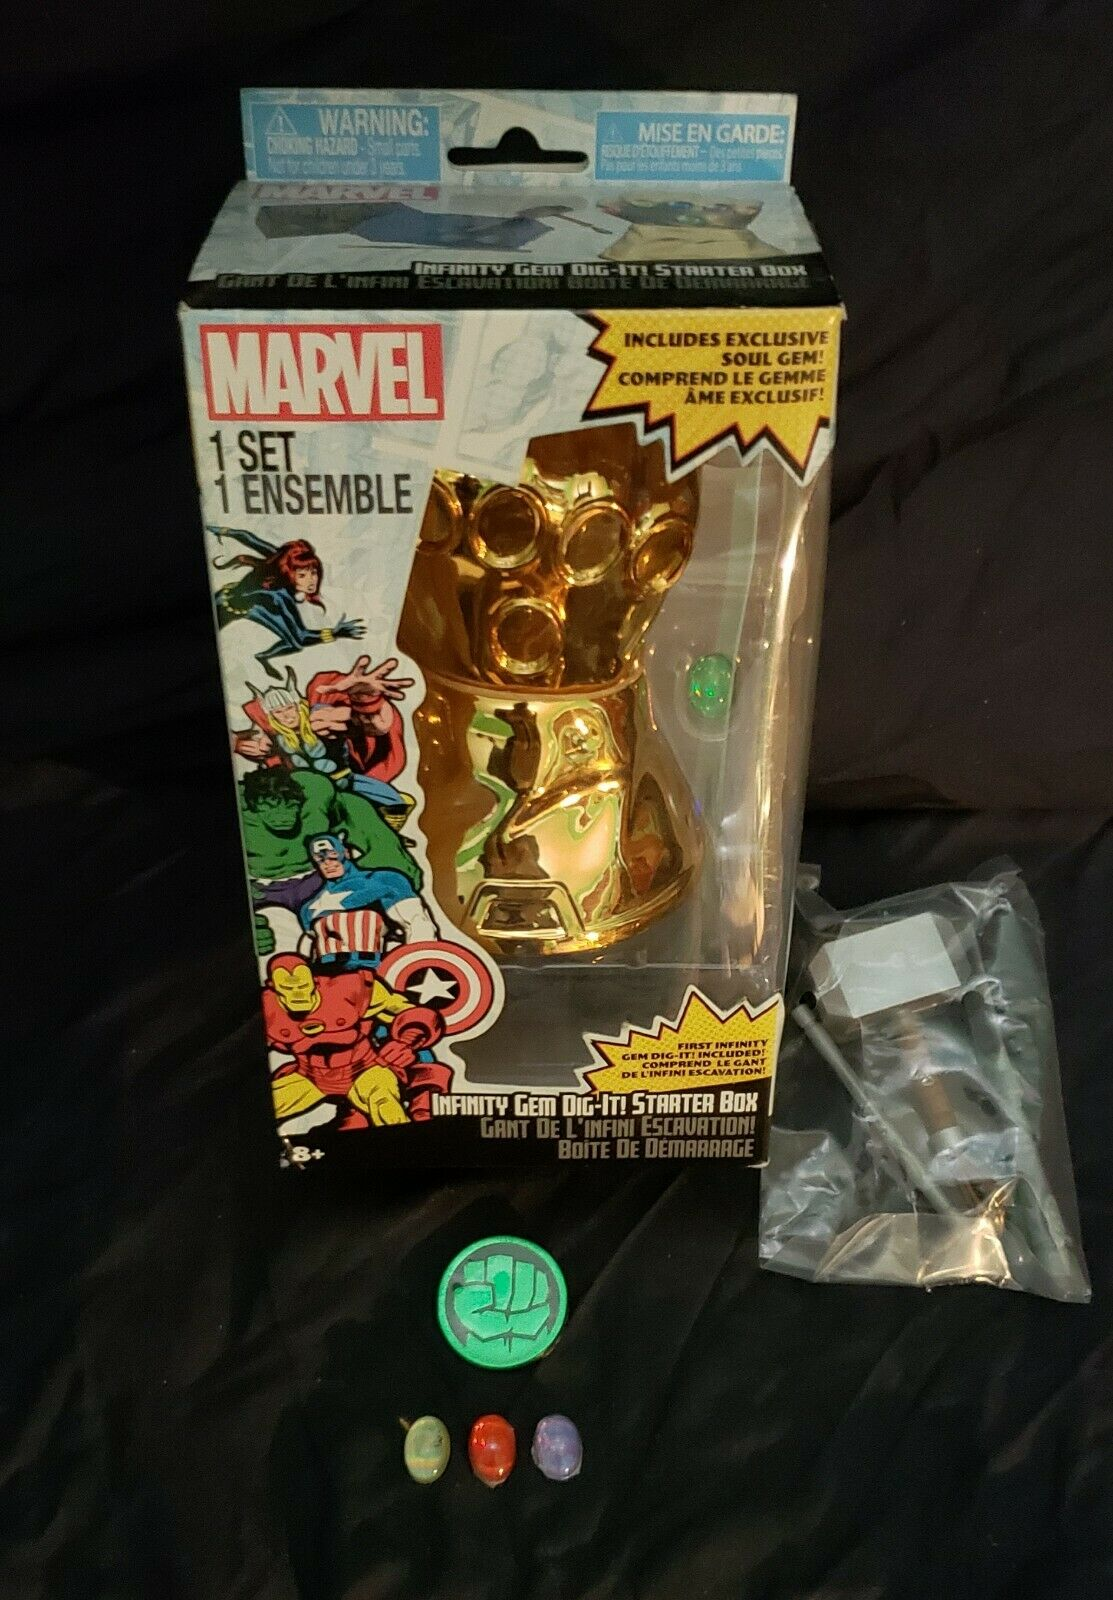 Marvel's dig it infinity gauntlet with gems stones and hero coin